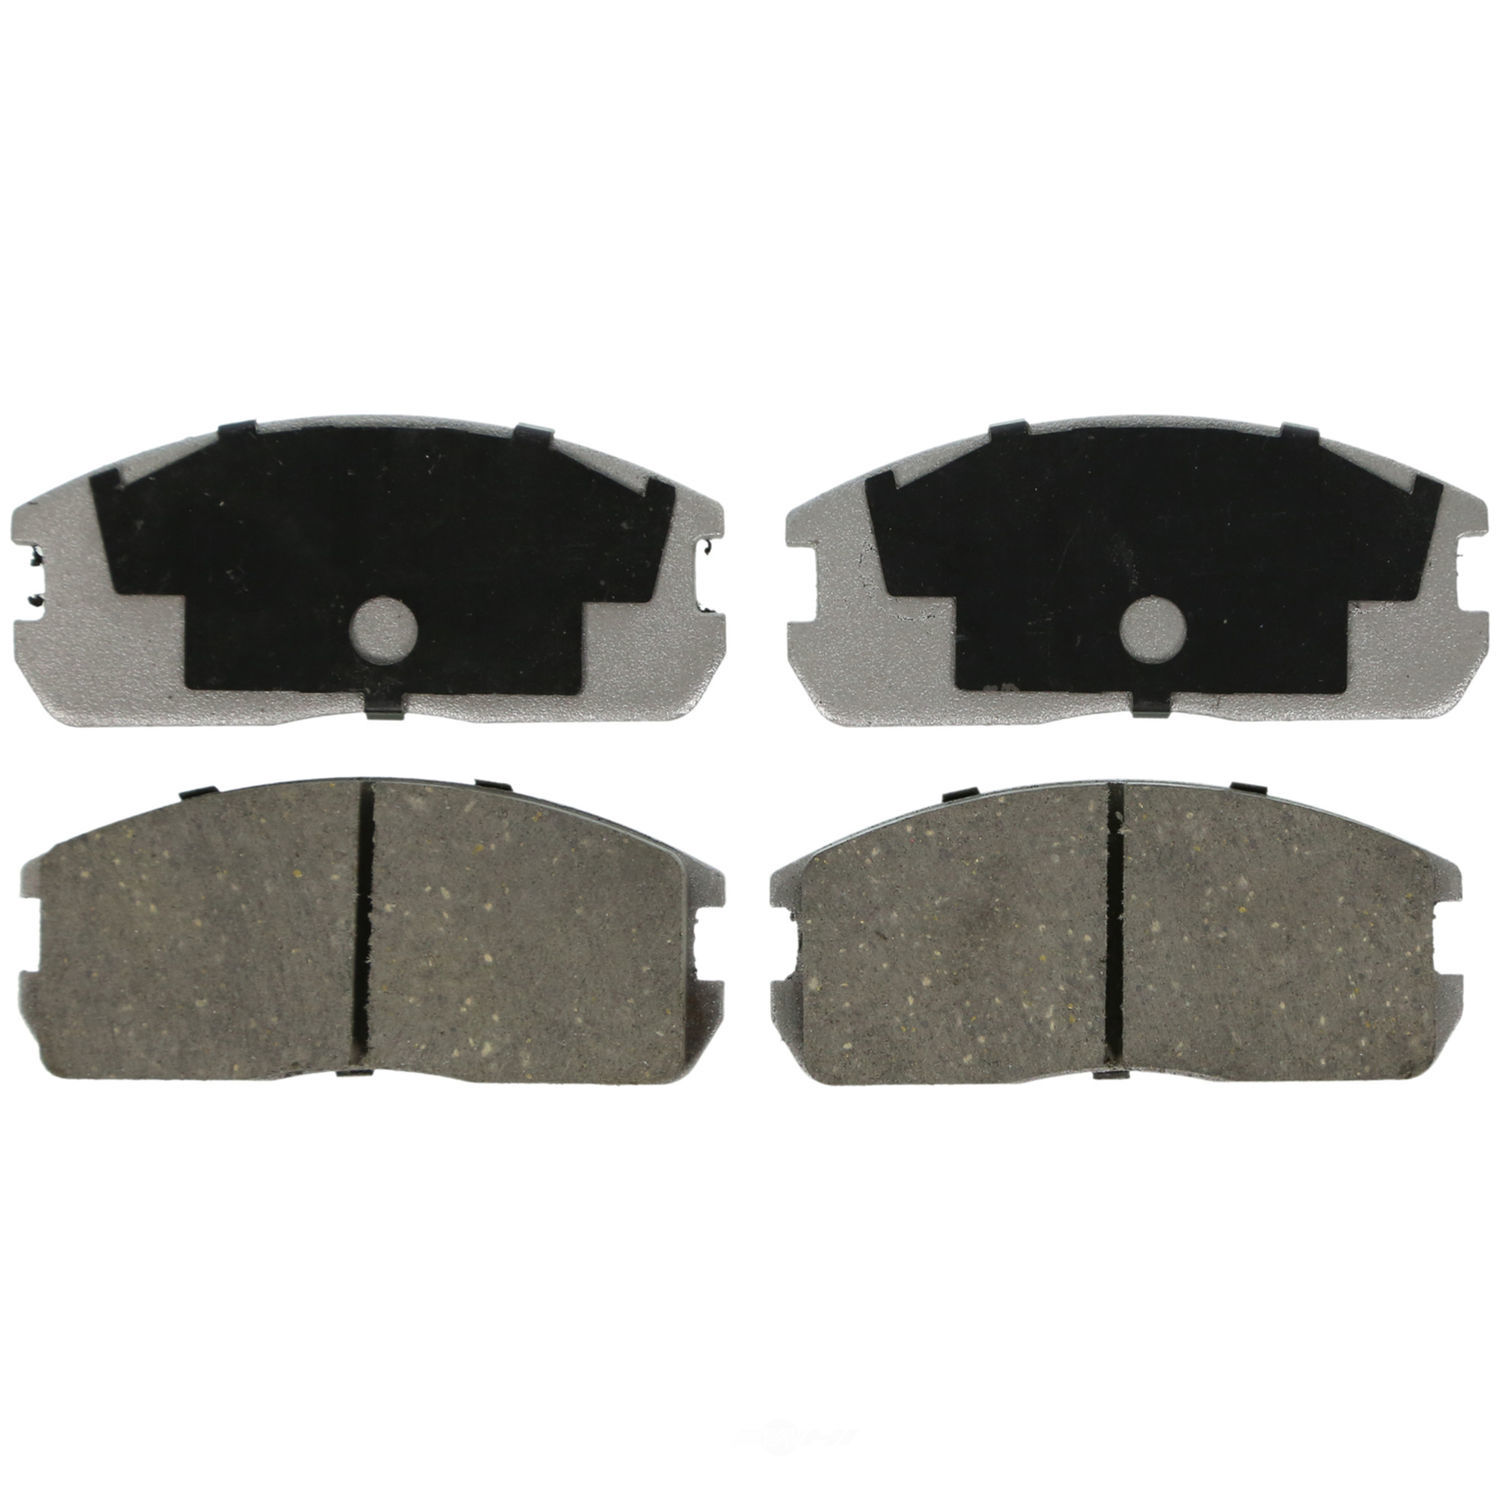 WAGNER BRAKE - ThermoQuiet Disc Brake Pad (Front) - WGC PD299